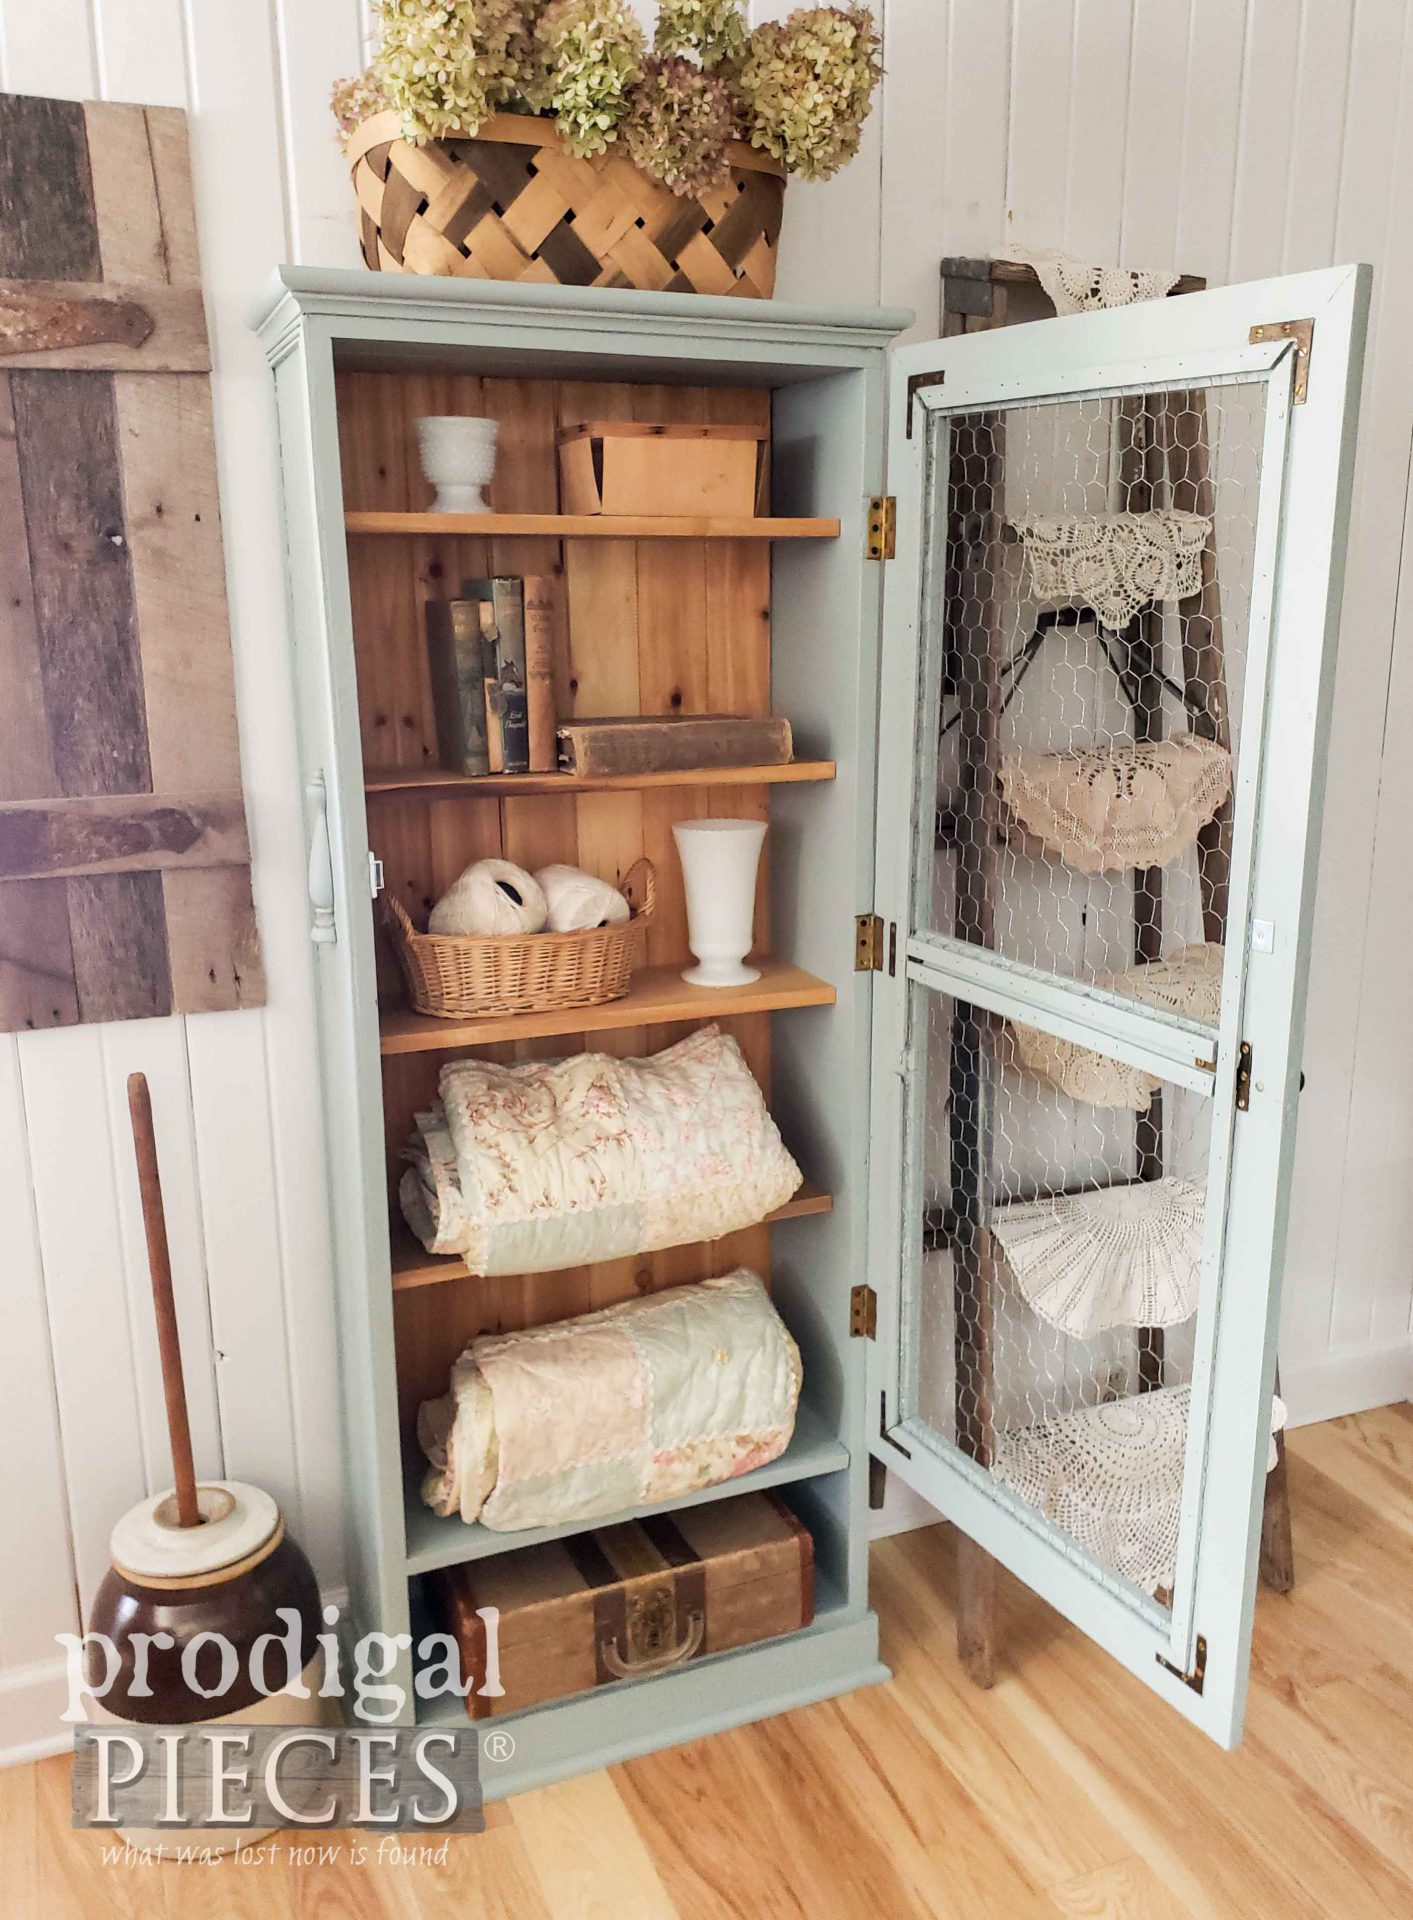 Farmhouse Upcycled Gun Cabinet DIY Fun by Larissa of Prodigal Pieces | prodigalpieces.com #prodigalpieces #upcycled #vintage #furniture #farmhouse #home #homedecor